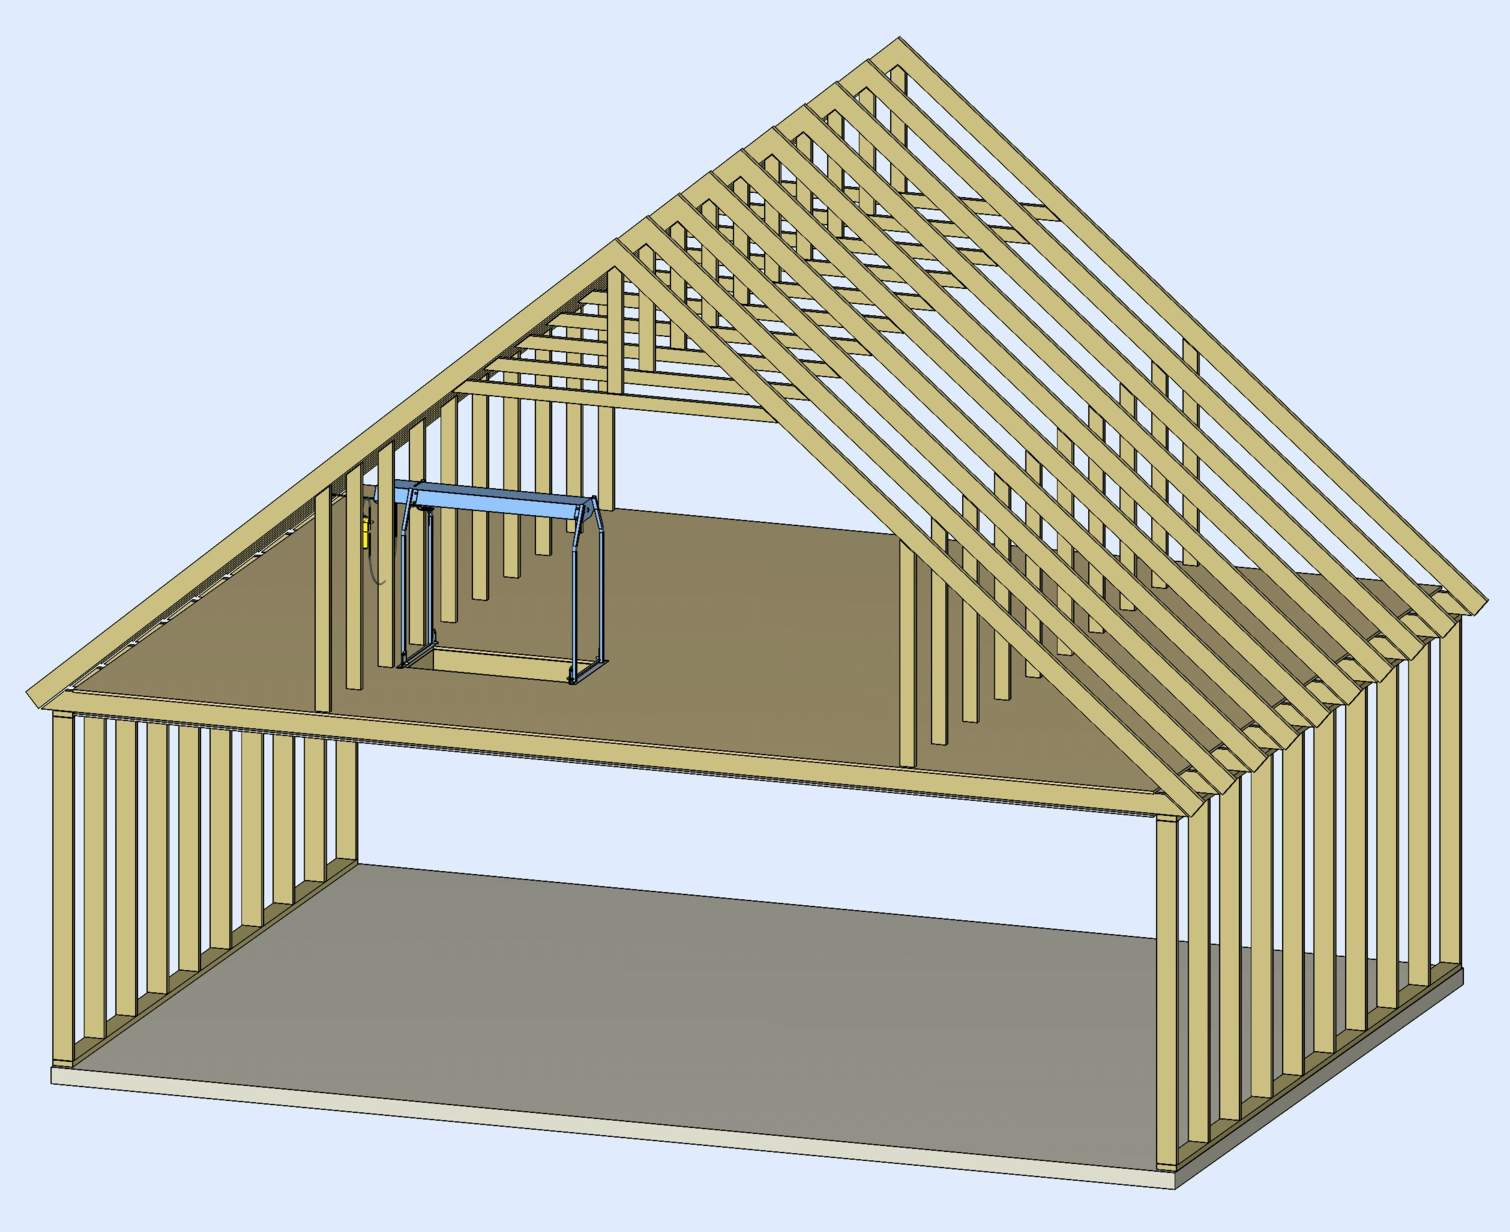 Attic roof truss design calculator attic ideas for Price on roof trusses